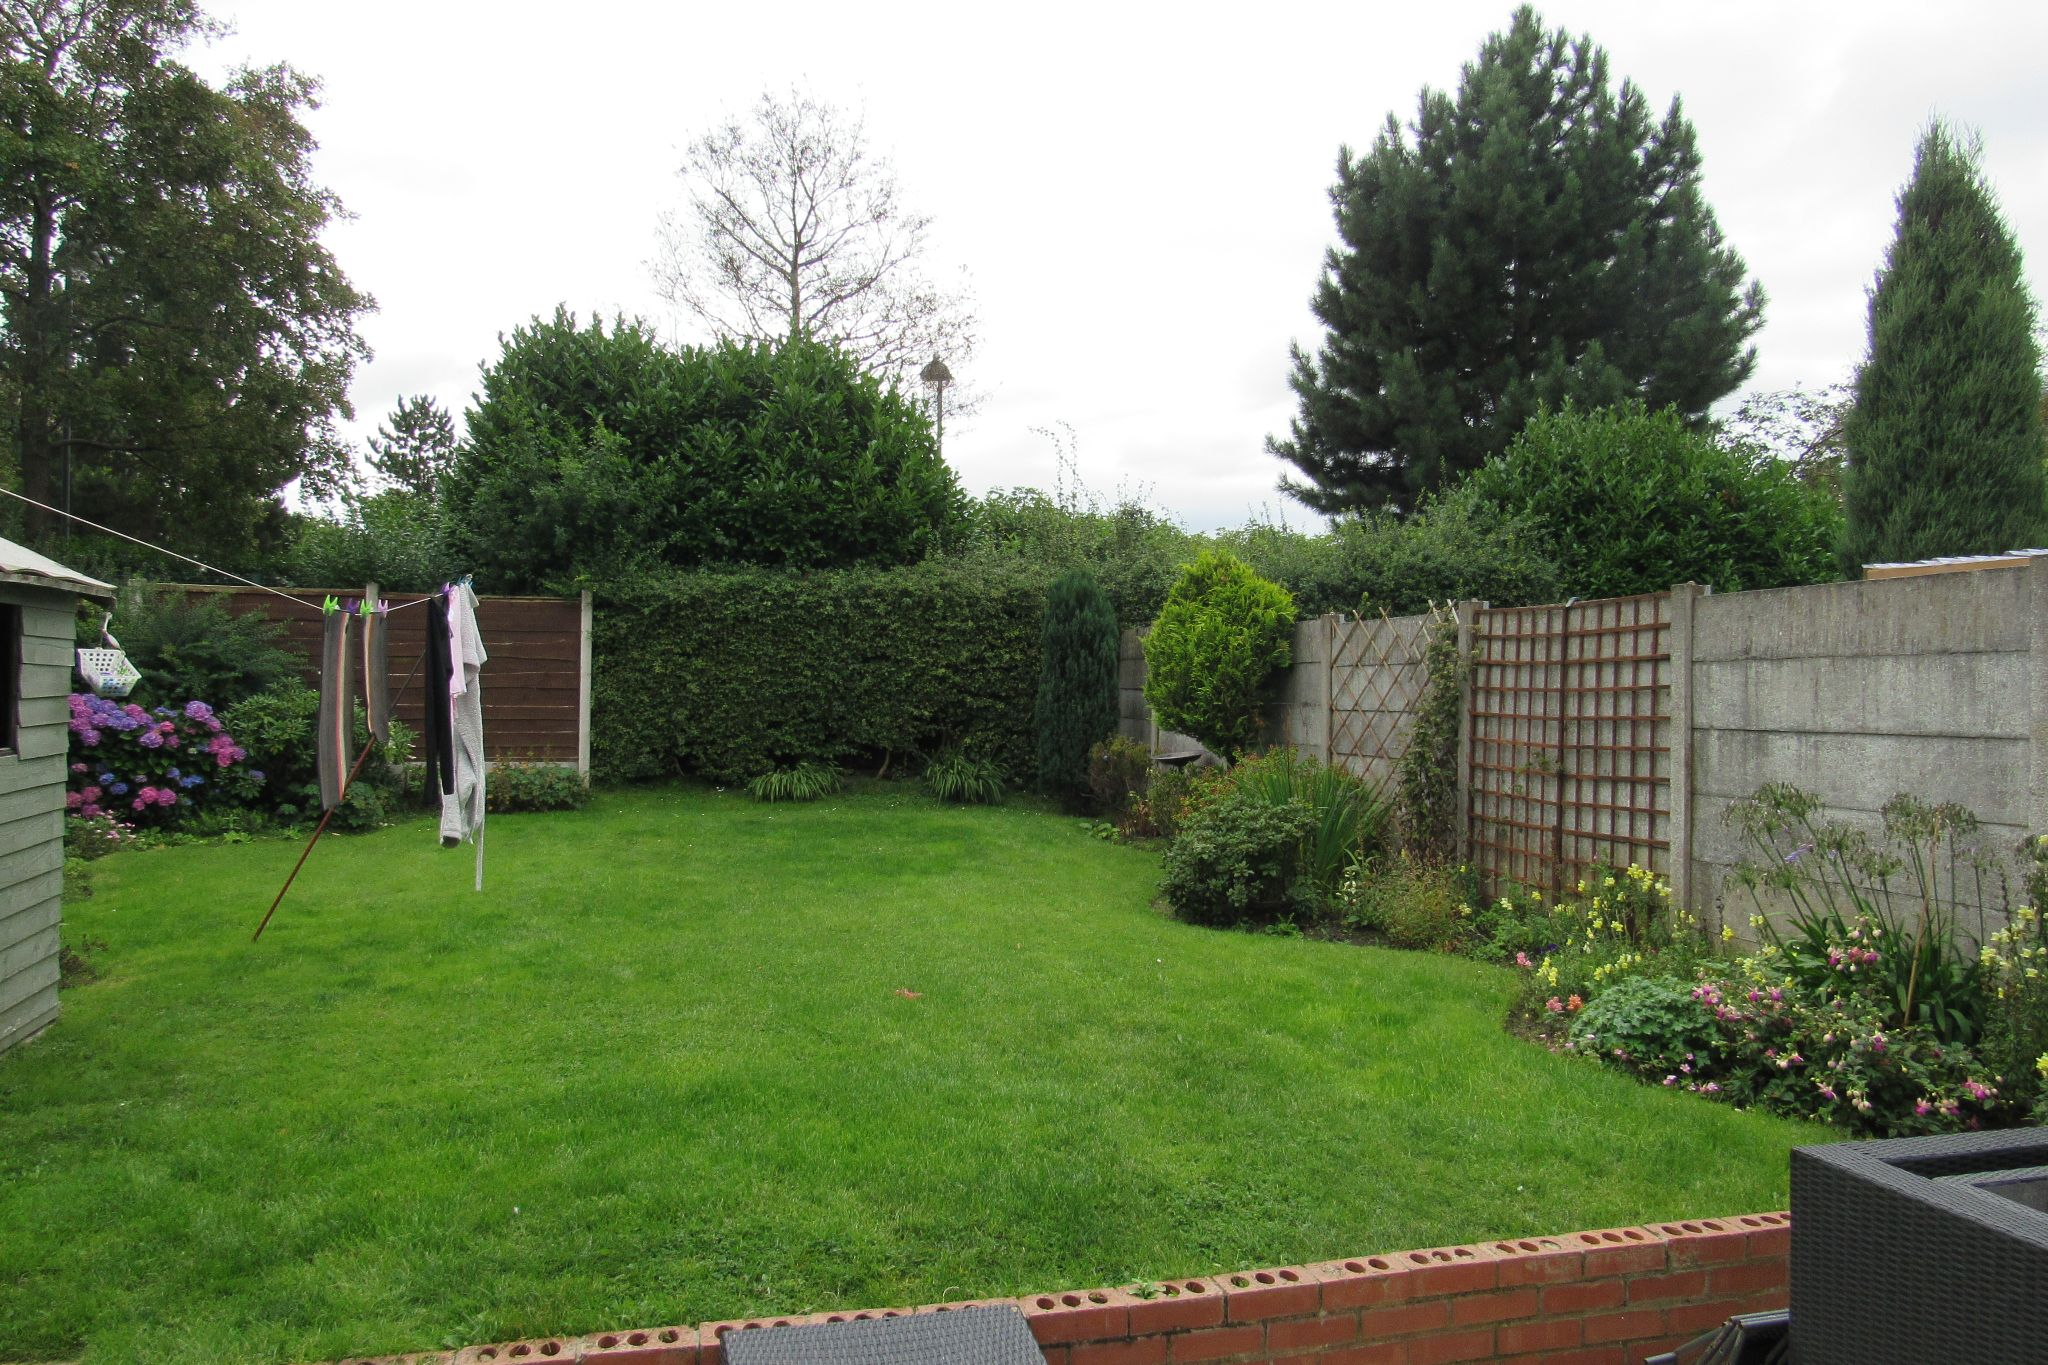 3 bedroom semi-detached house SSTC in Manchester - Photograph 10.